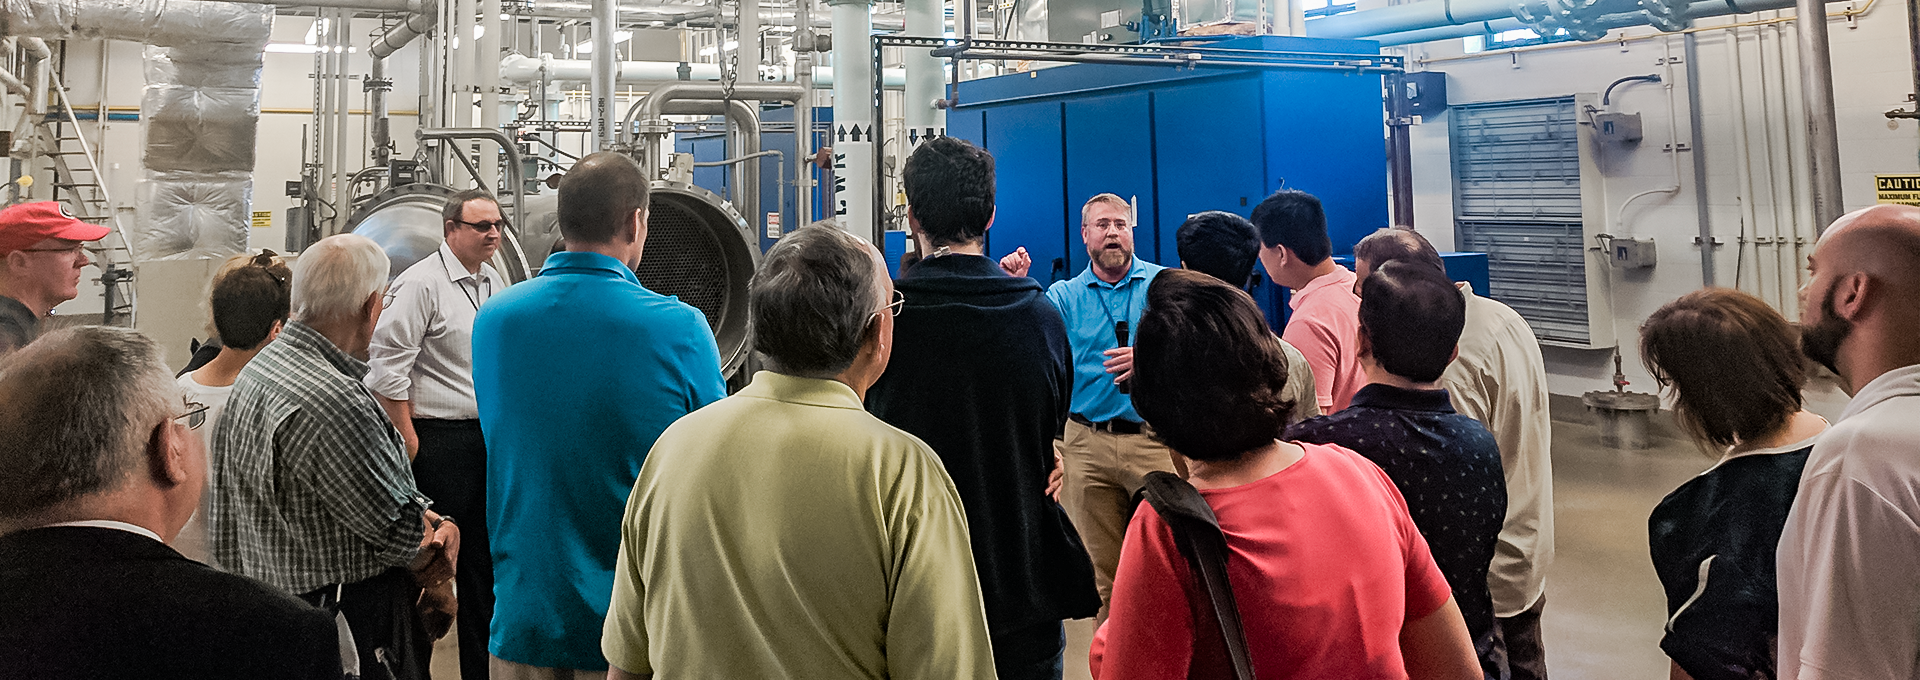 Town staffer giving a tour of a water treatment facility